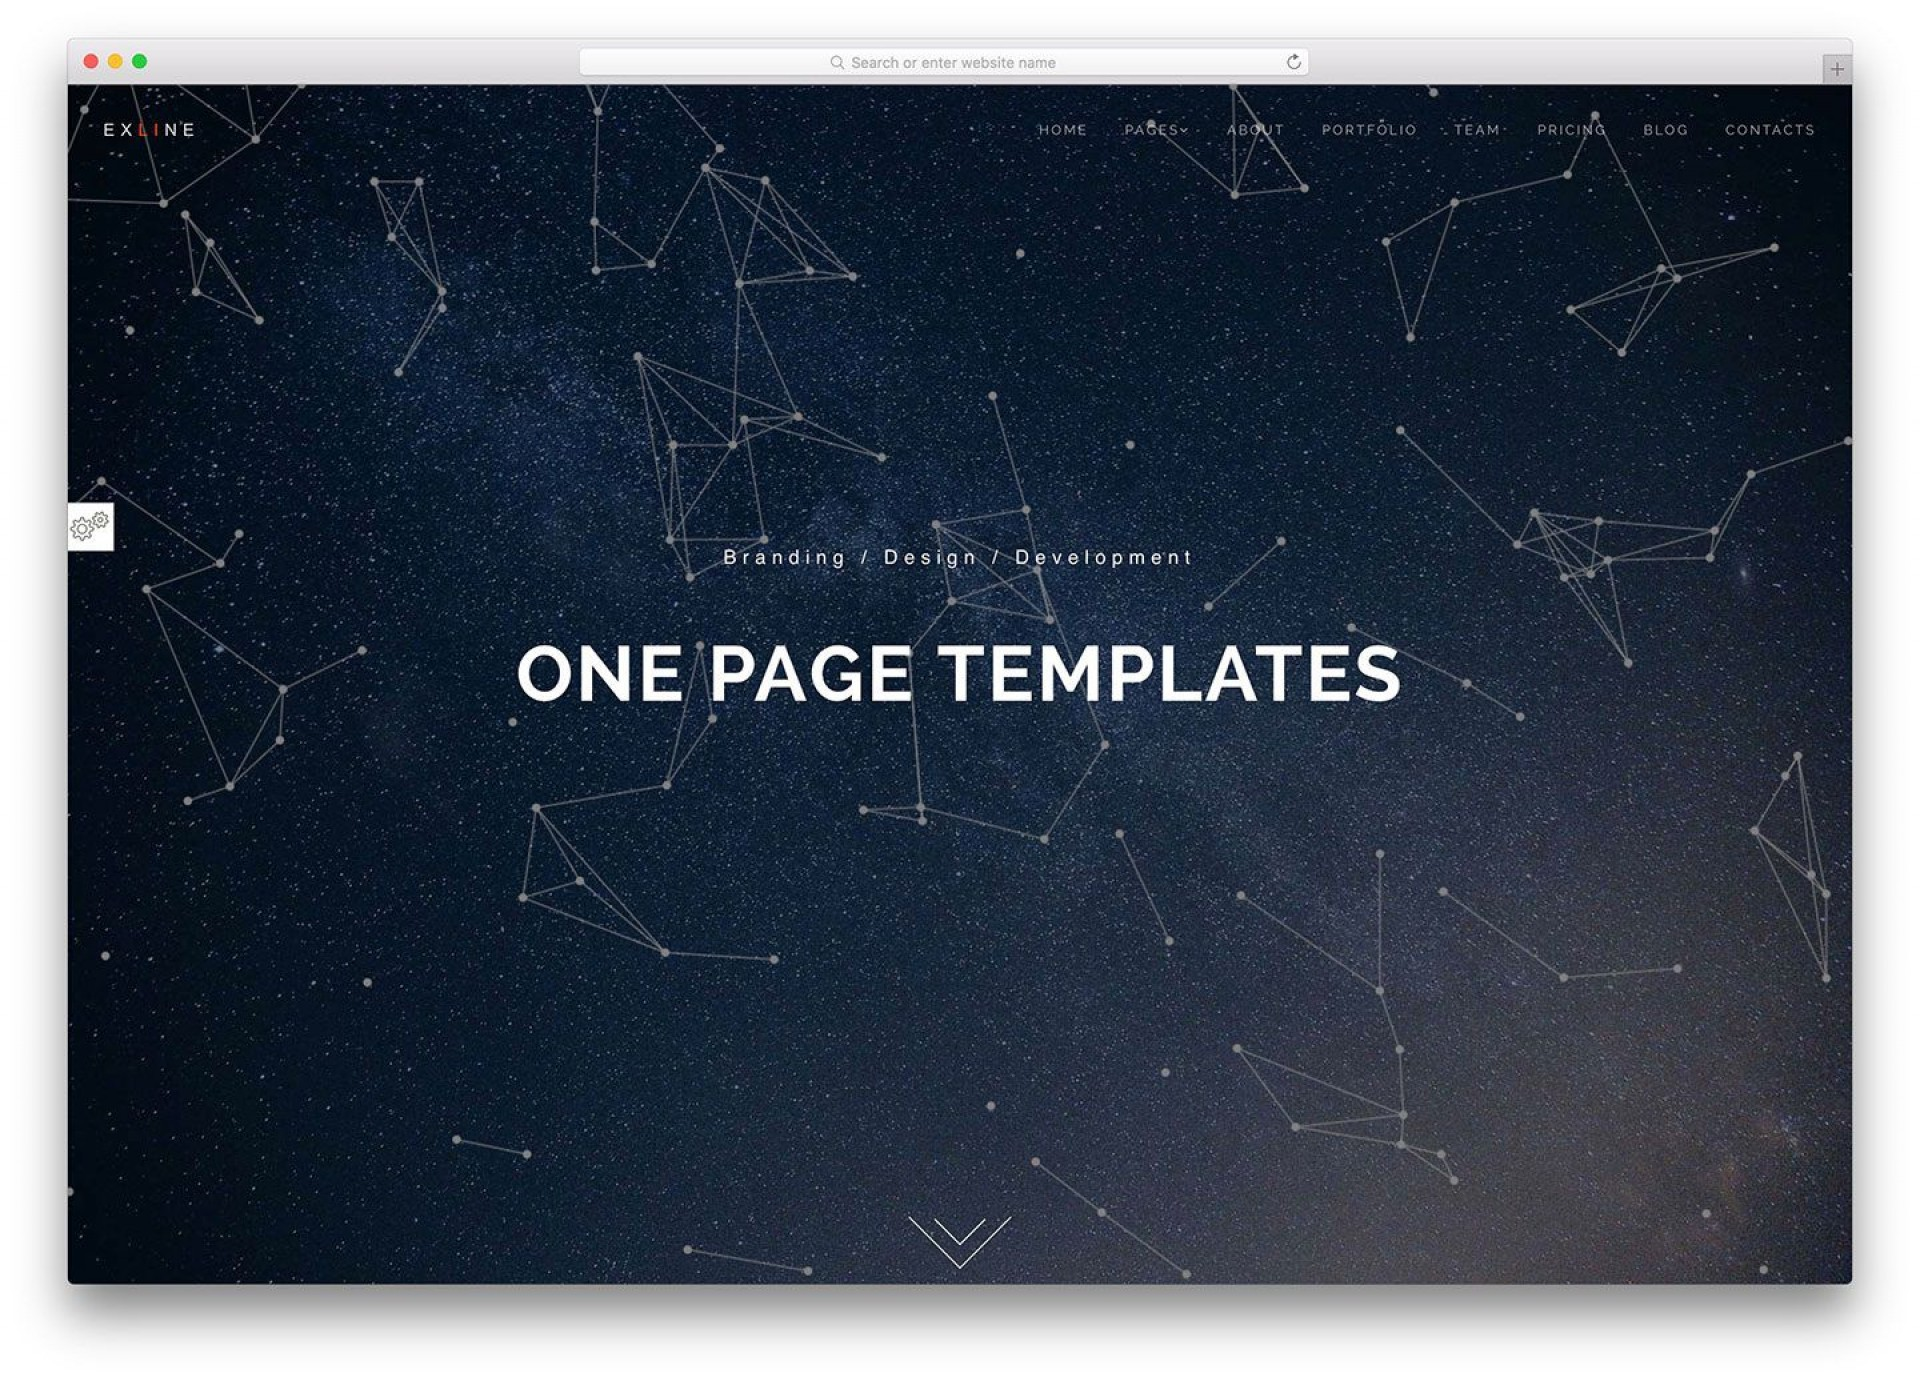 008 Archaicawful One Page Website Template Free Download Bootstrap Photo 1920